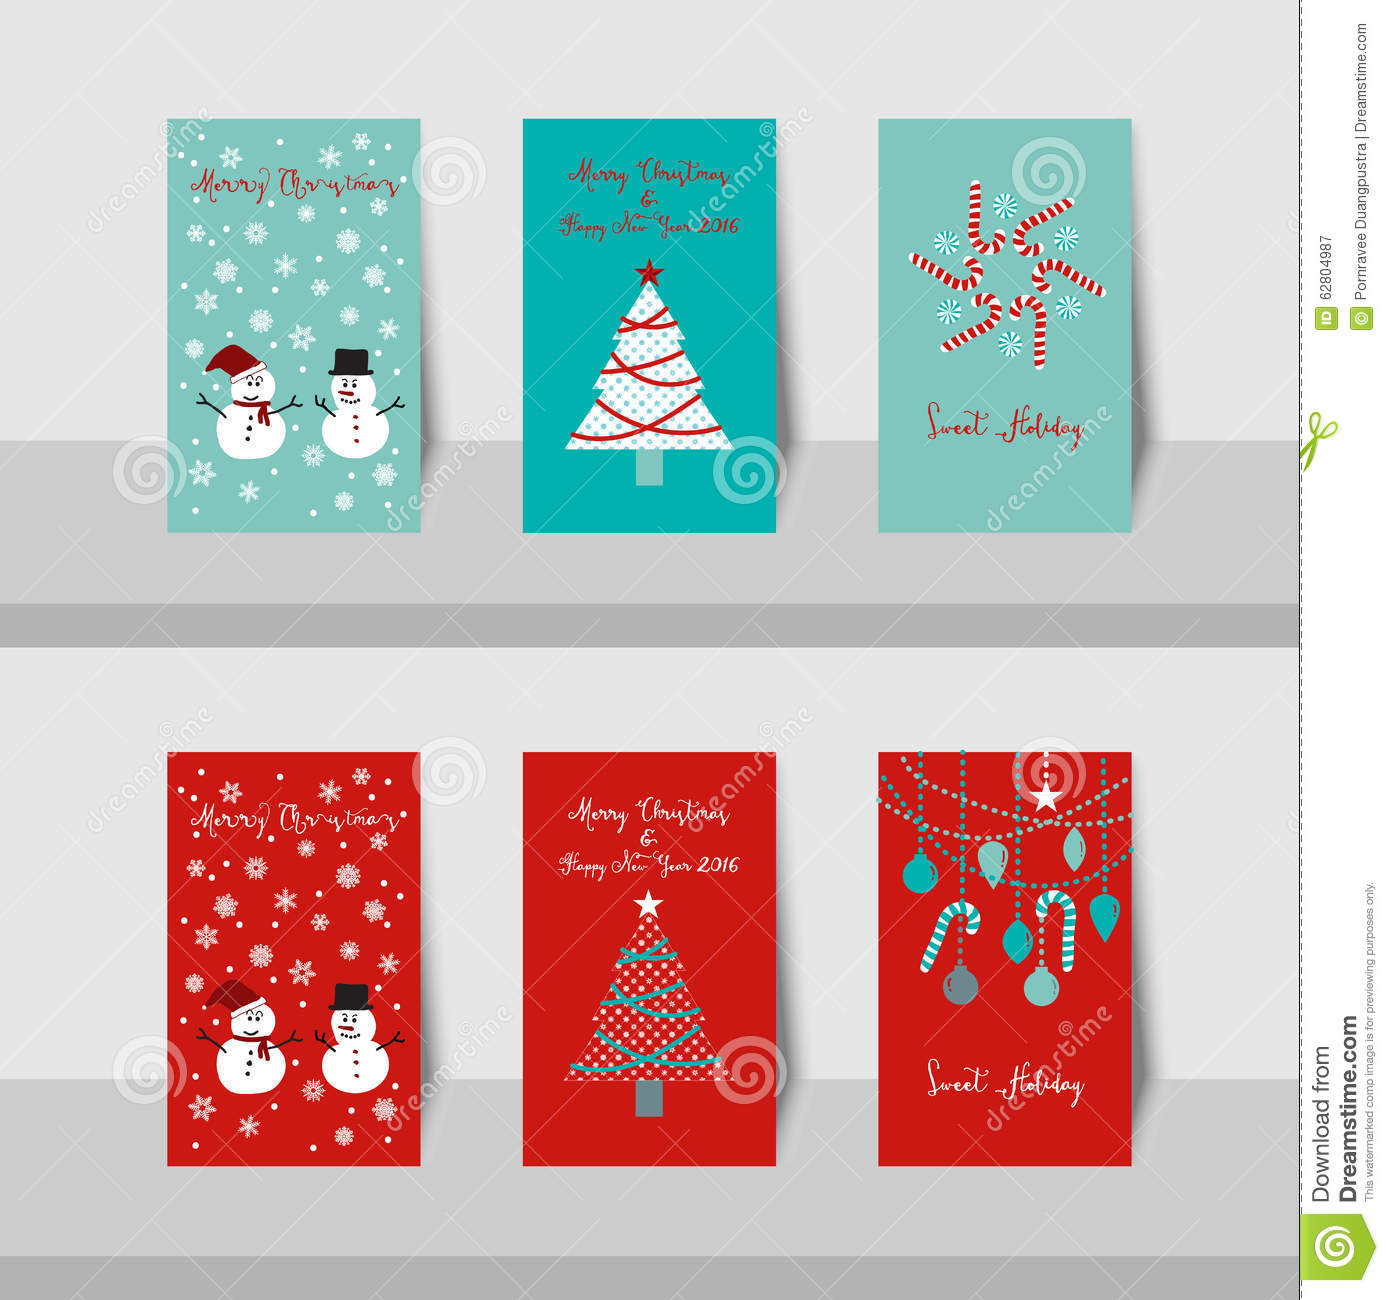 Christmas card-S1 stock vector. Illustration of greeting - 62804987